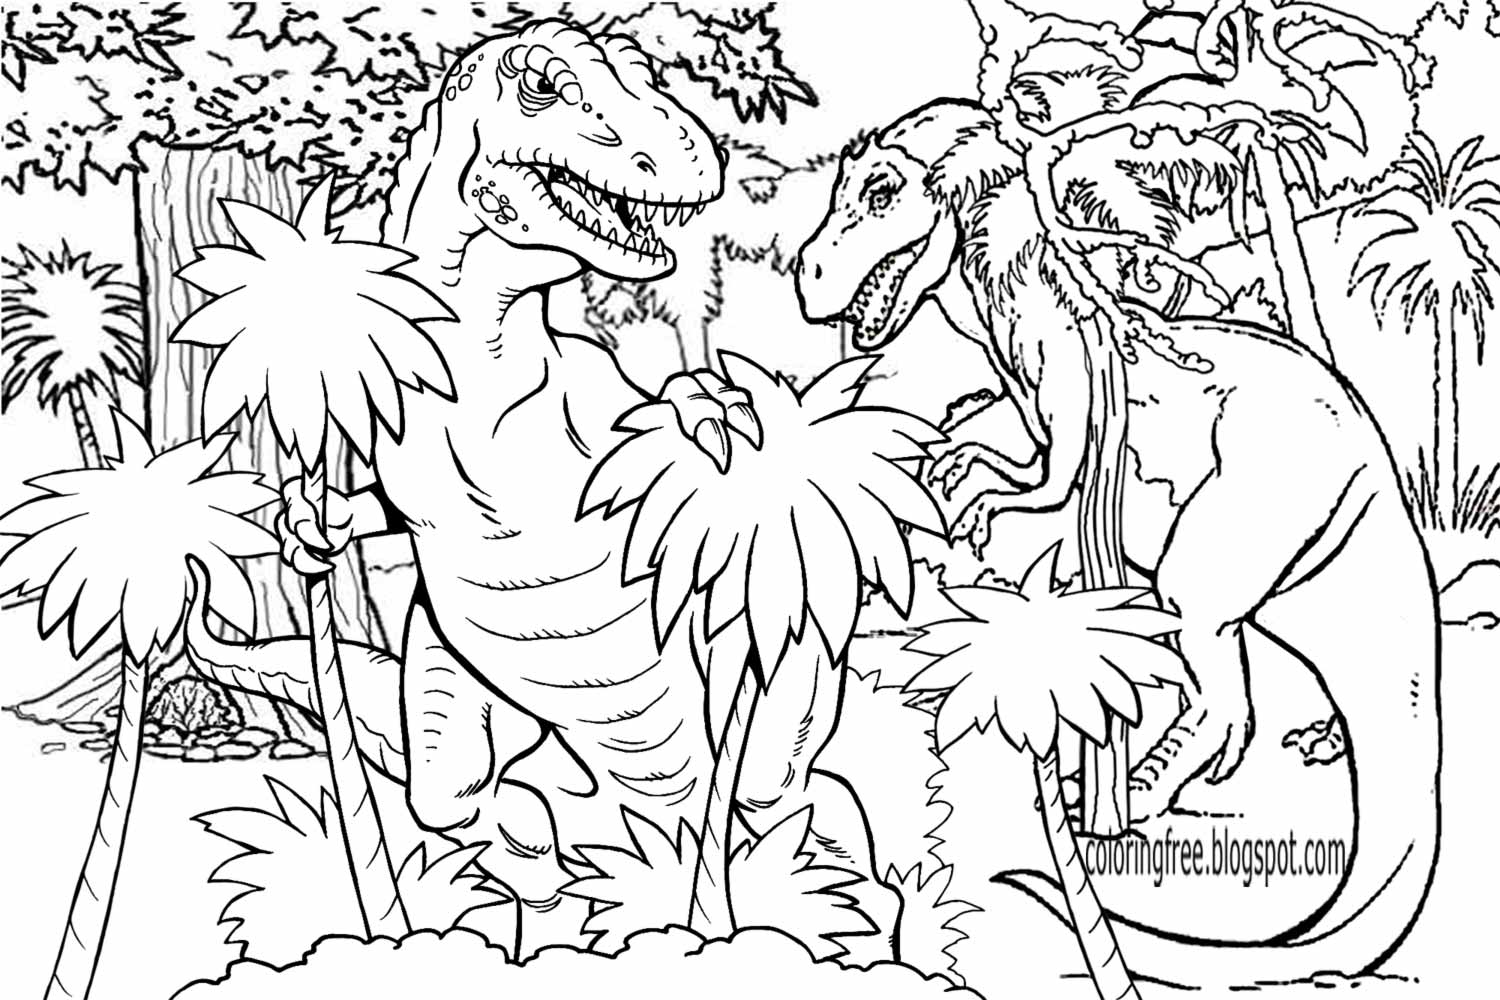 dinosaur printable coloring sheets coloring pages dinosaurs large collection print for free dinosaur sheets coloring printable